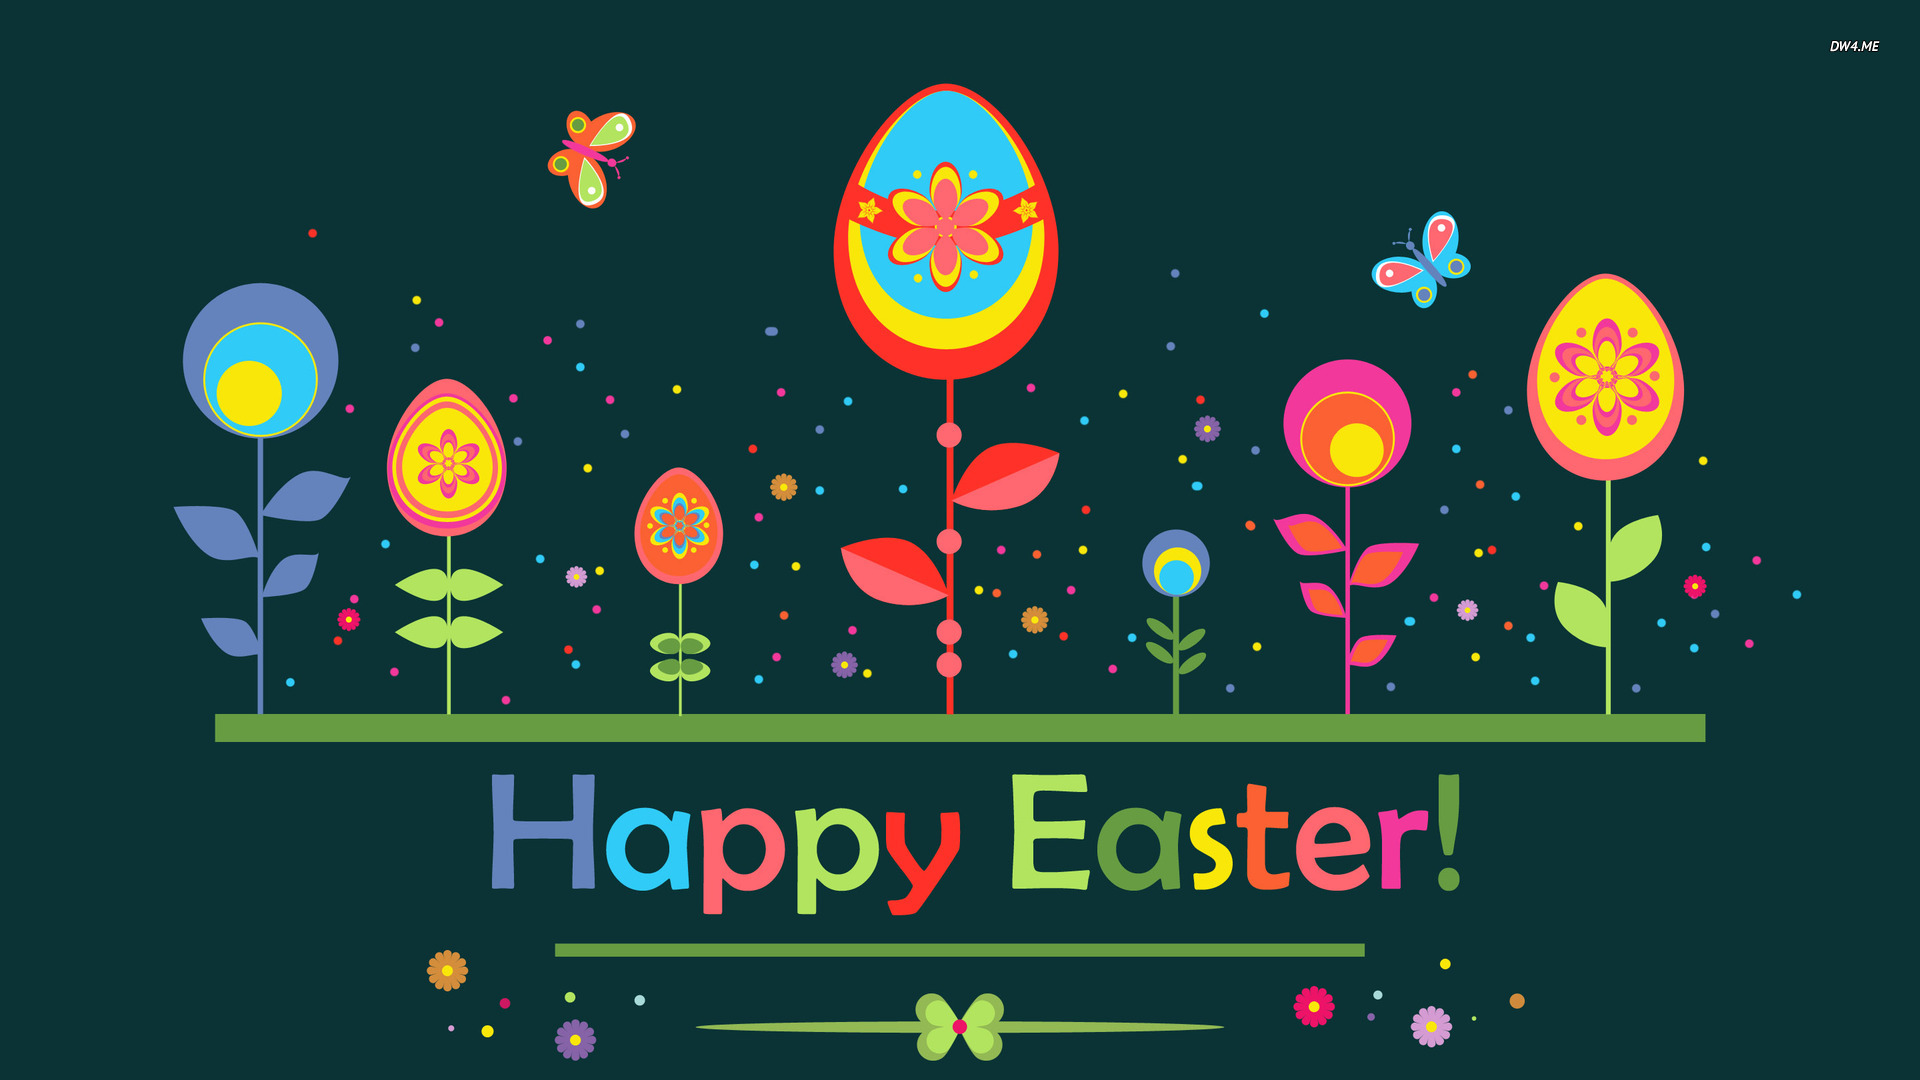 Easter Wallpaper Images